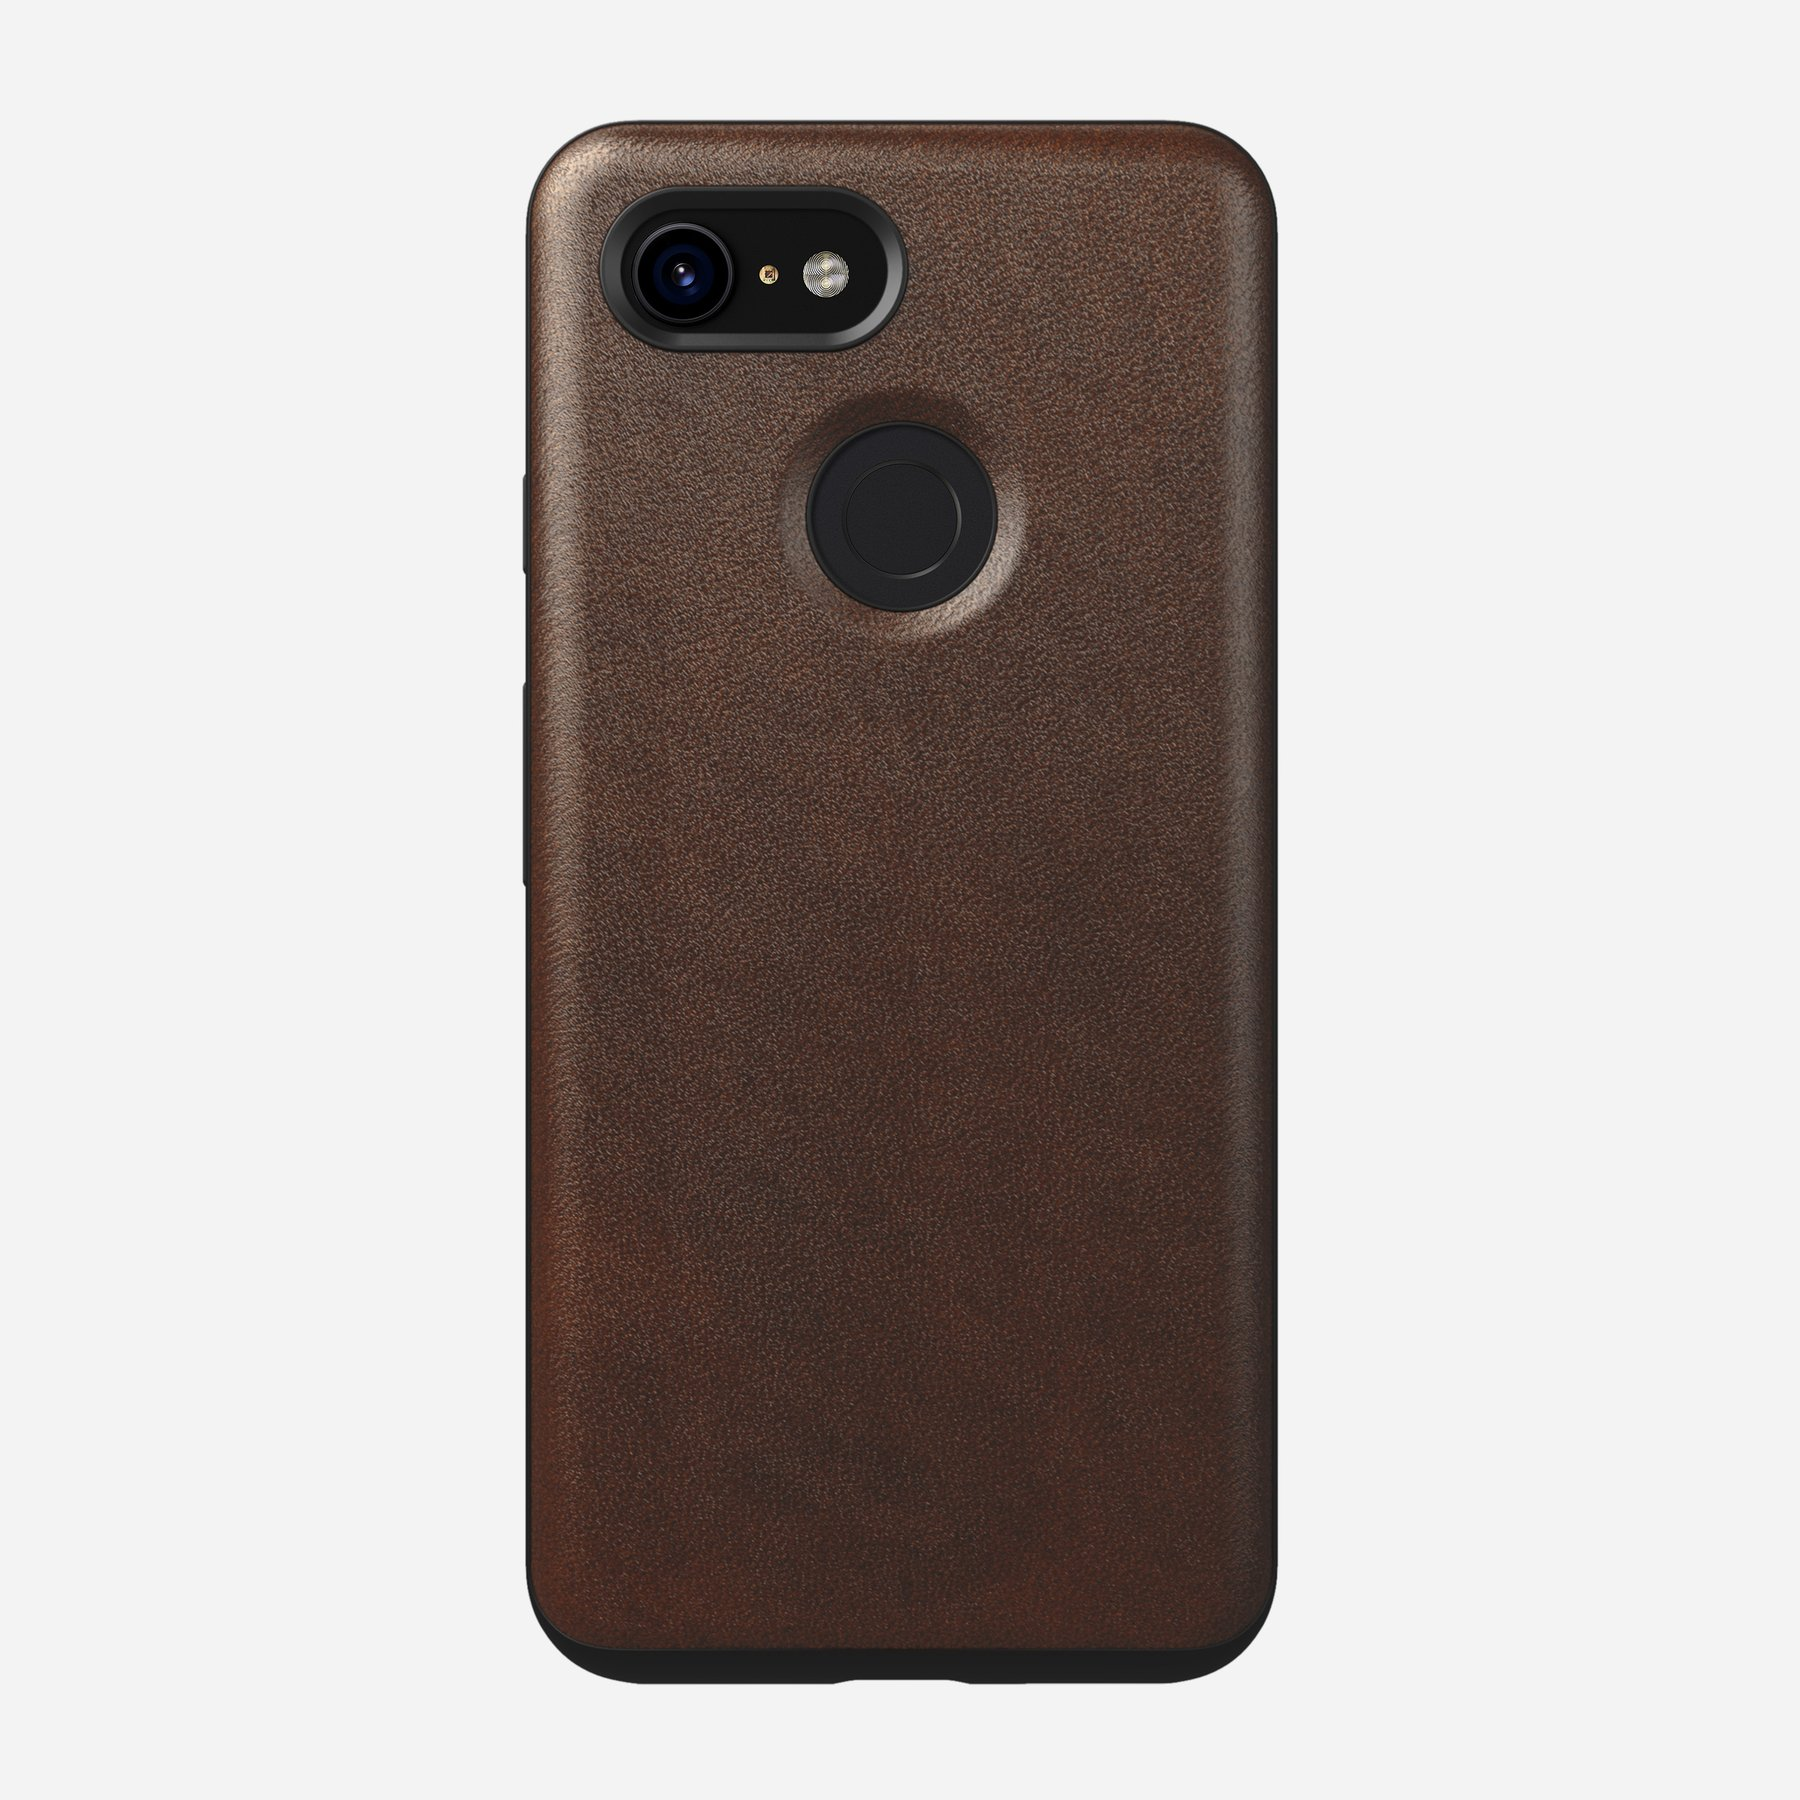 Milchglas Textur The Best Pixel 3 Cases And Covers Digital Trends